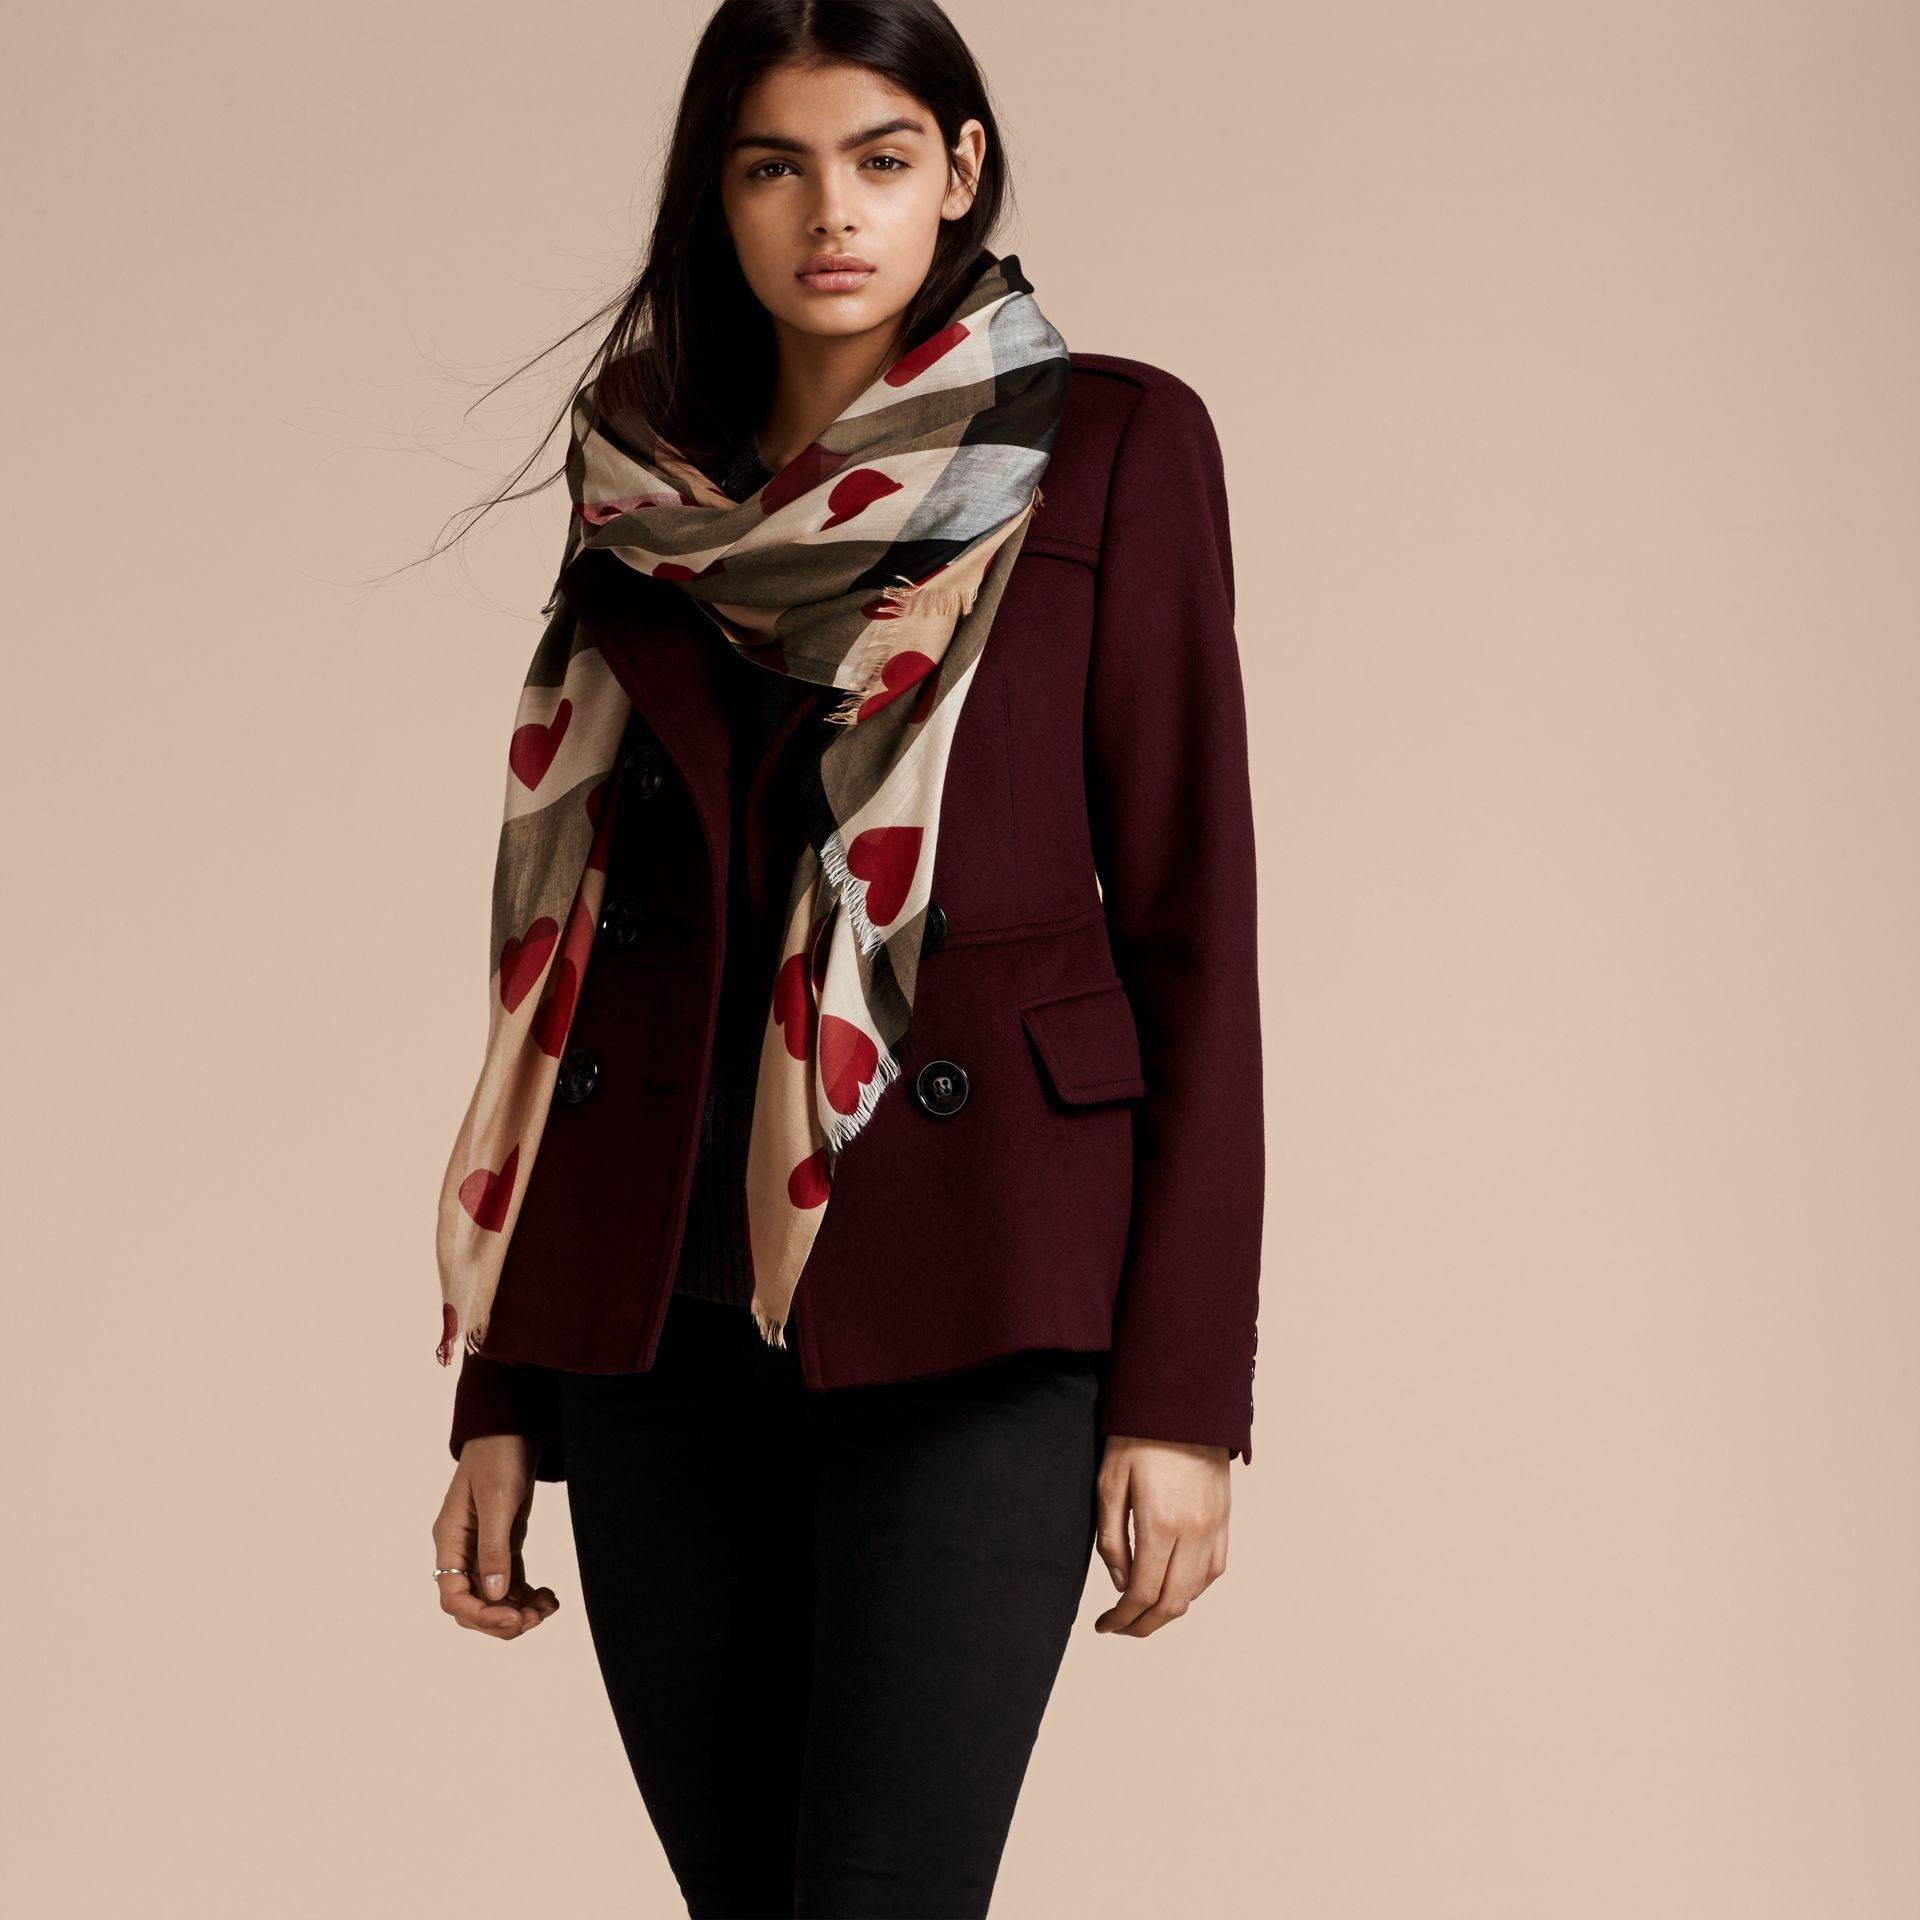 Heart and Check Modal and Cashmere Scarf in Camel/red - Women | Burberry - gallery image 2